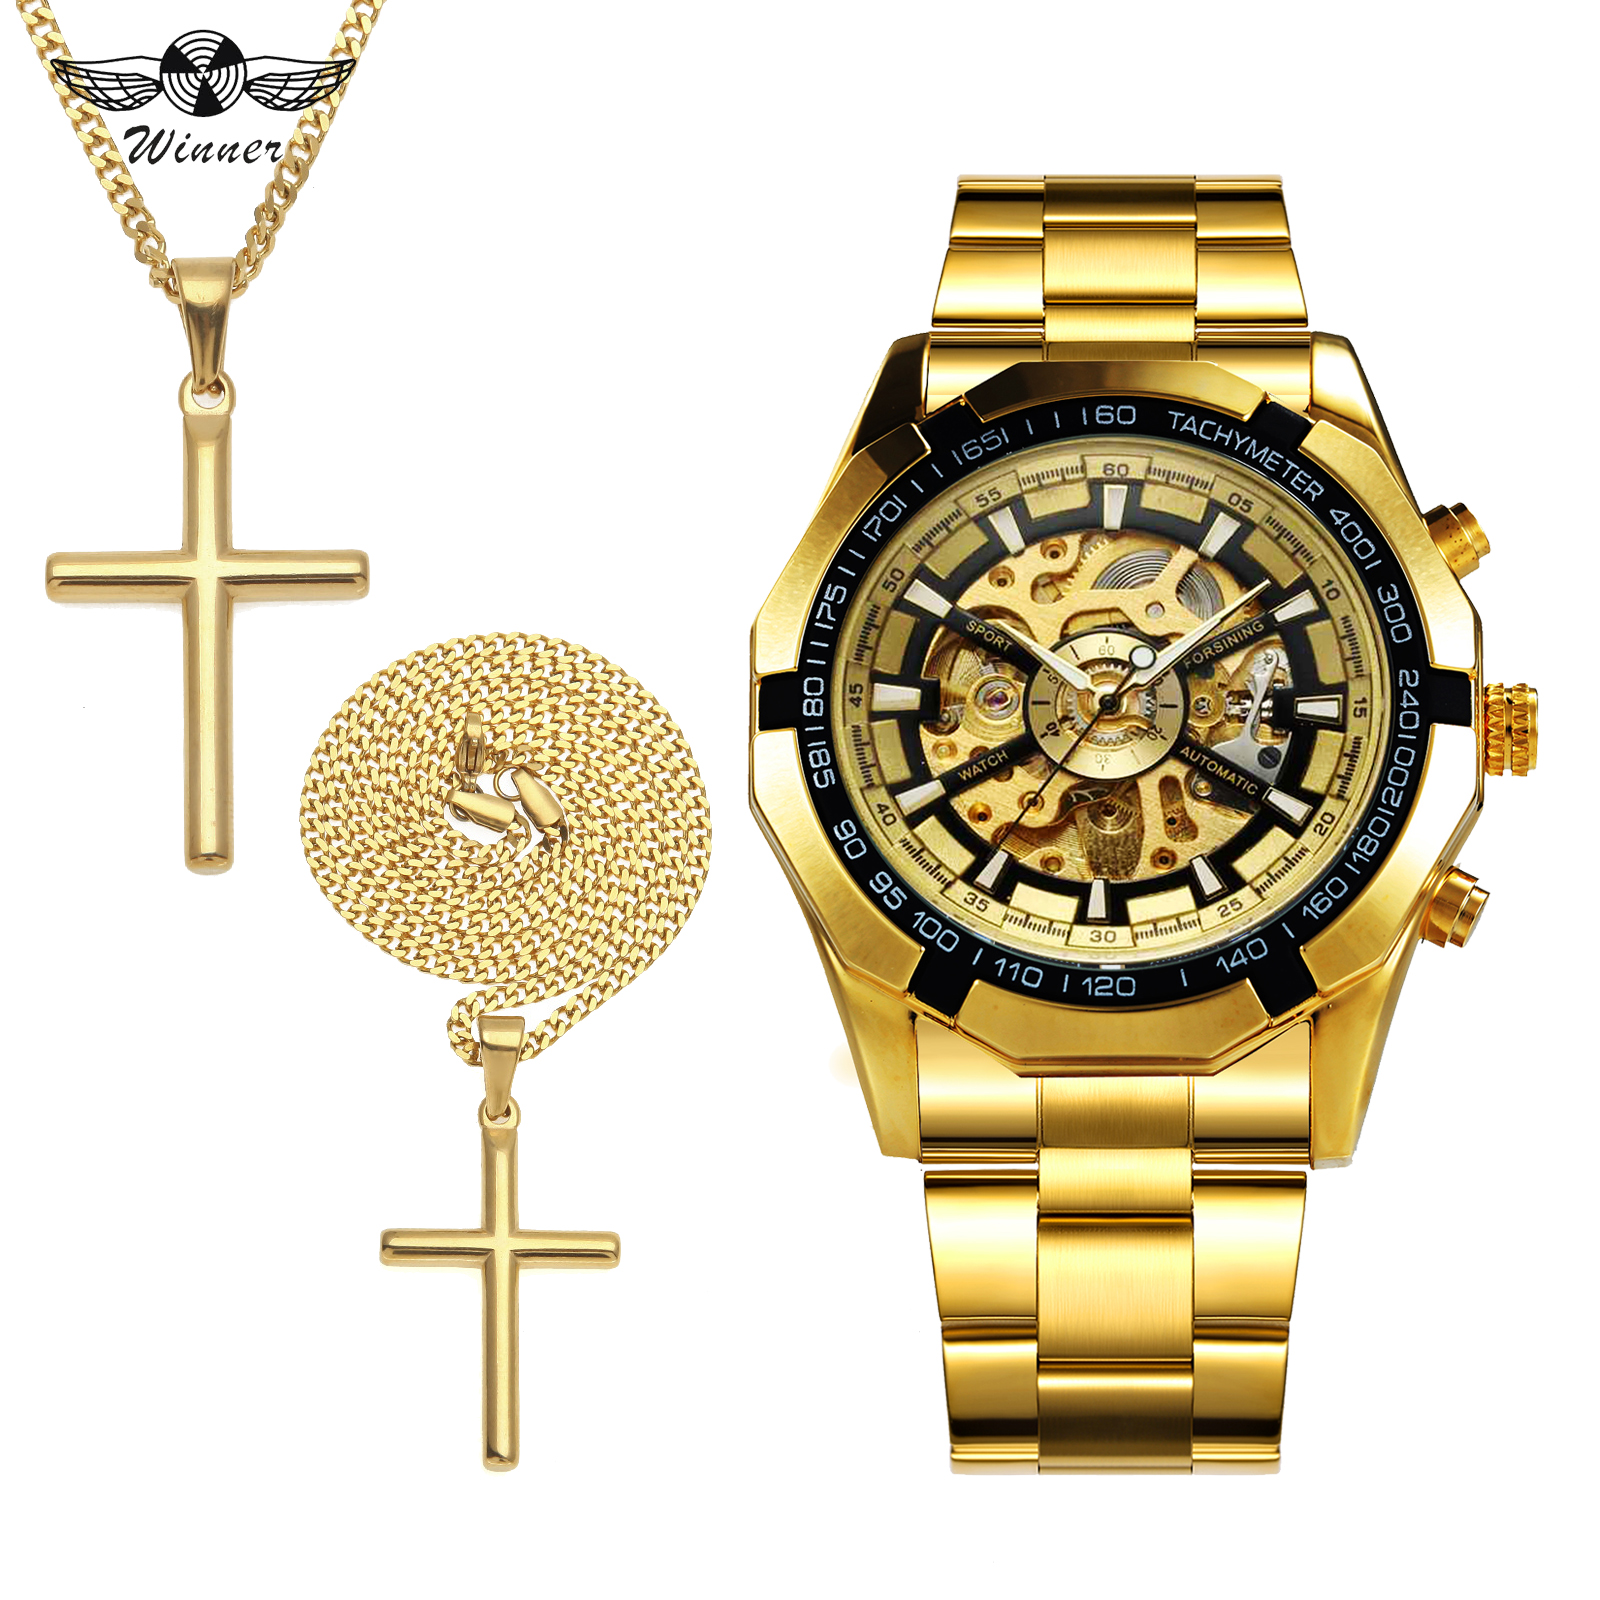 WINNER Punk HIP HOP Watch Men Jewelry Set Fashion Auto Mechanical Mens Watches Top Brand Luxury + Golden Cross Necklace 2019 HOTWINNER Punk HIP HOP Watch Men Jewelry Set Fashion Auto Mechanical Mens Watches Top Brand Luxury + Golden Cross Necklace 2019 HOT